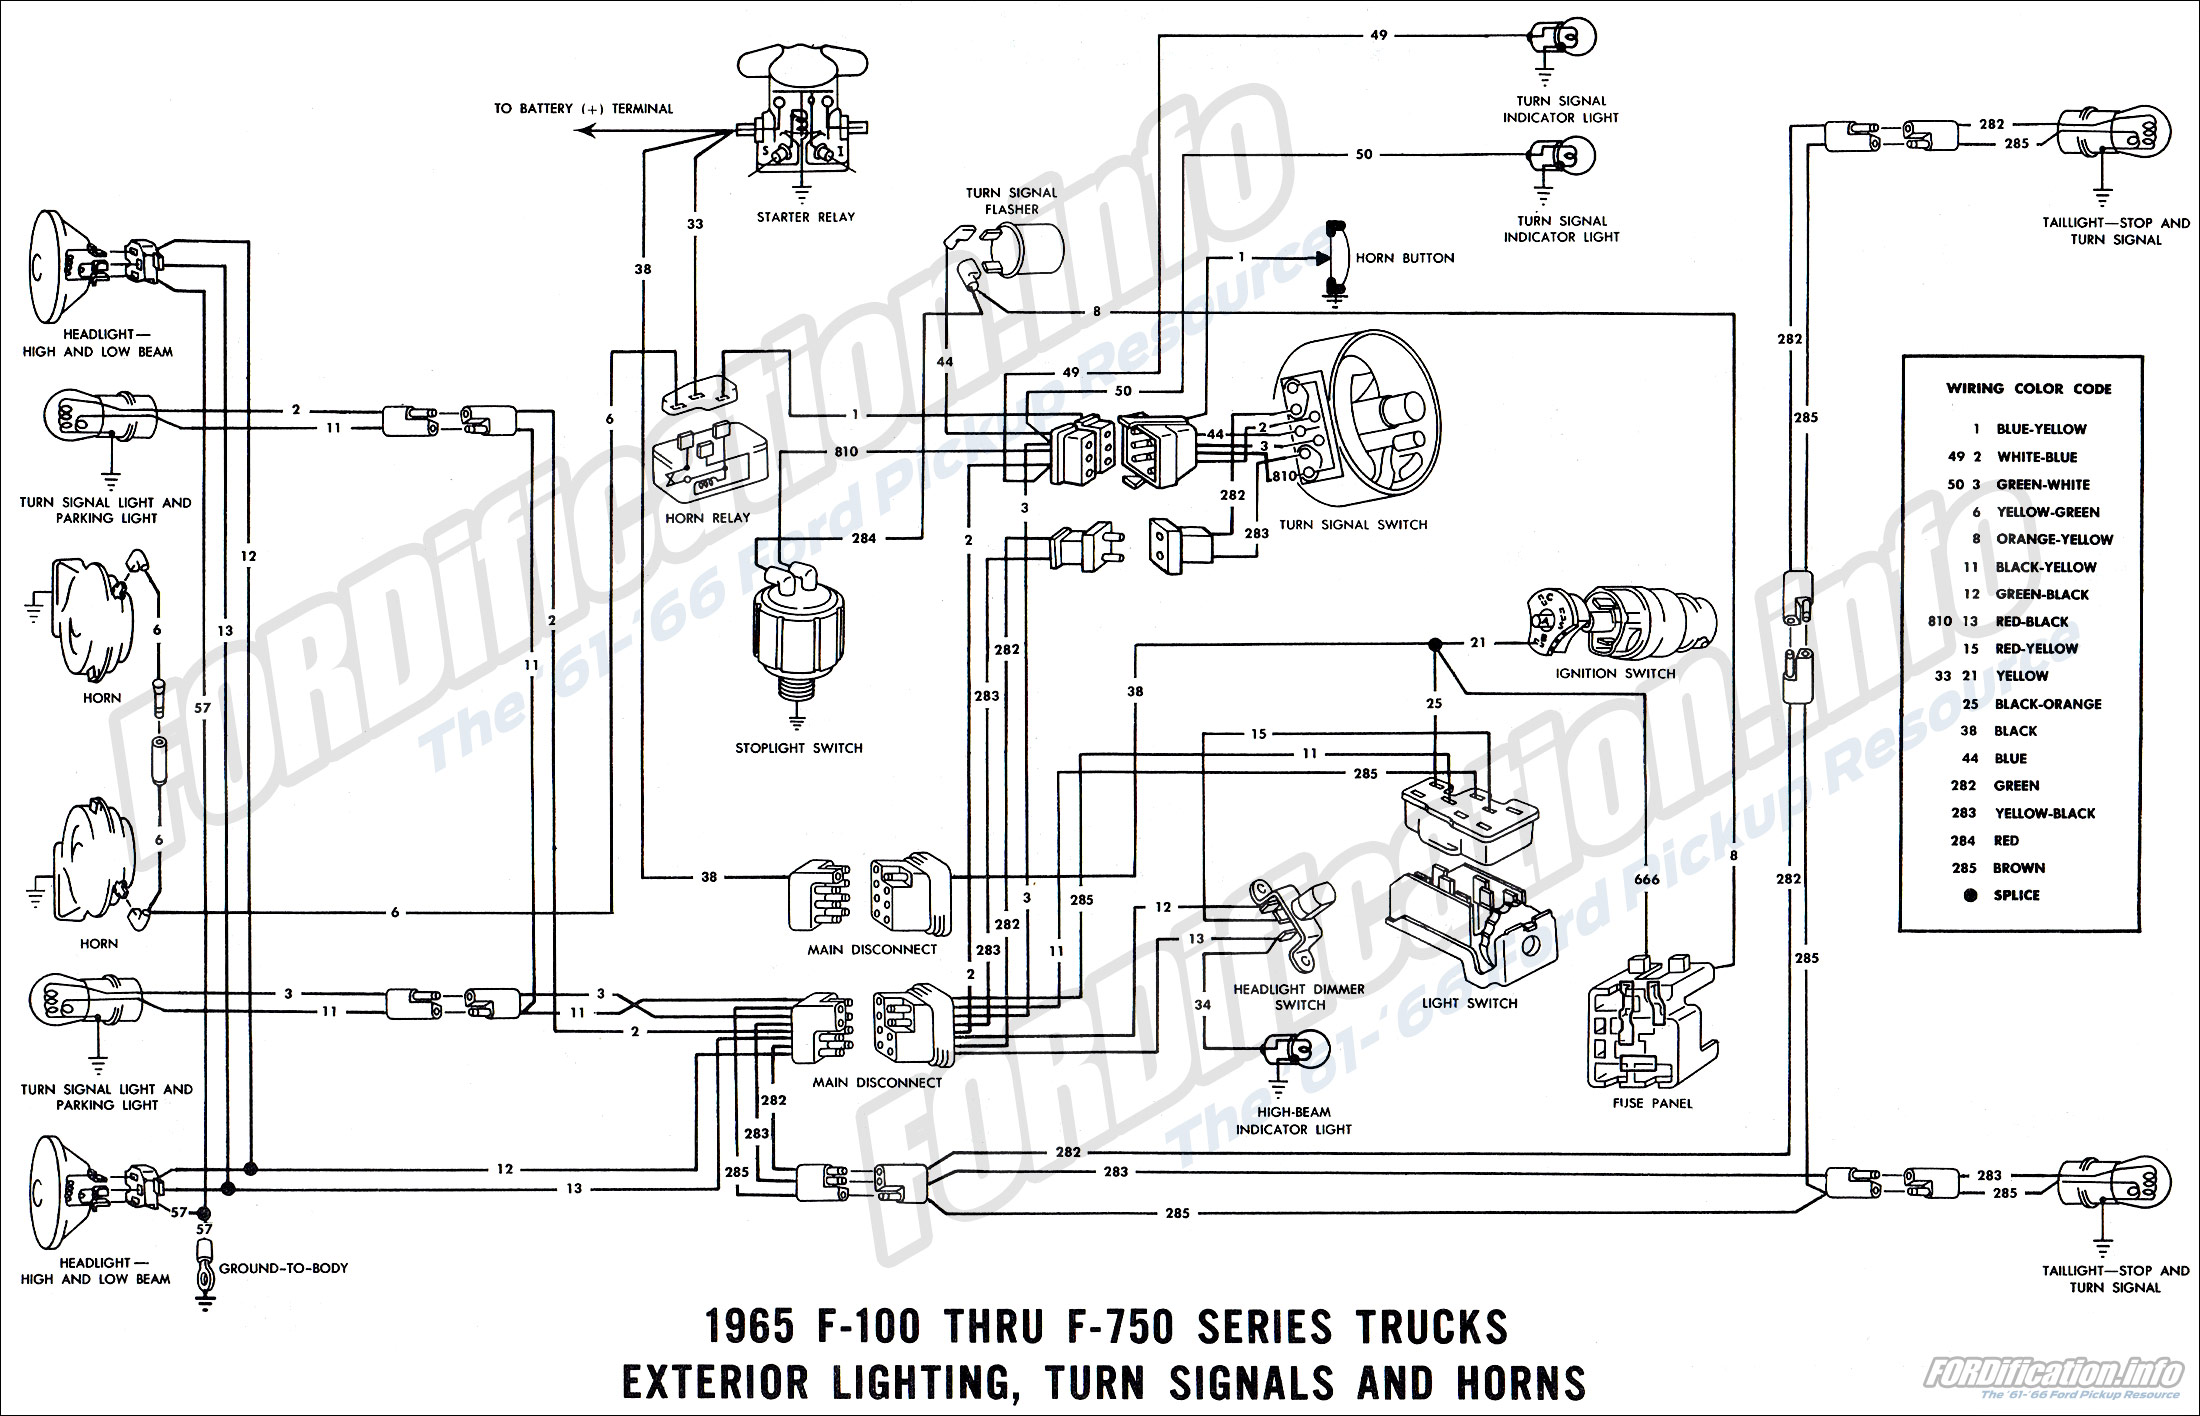 1965 lighting03 1965 ford truck wiring diagrams fordification info the '61 '66 fordification wiring diagram at gsmportal.co